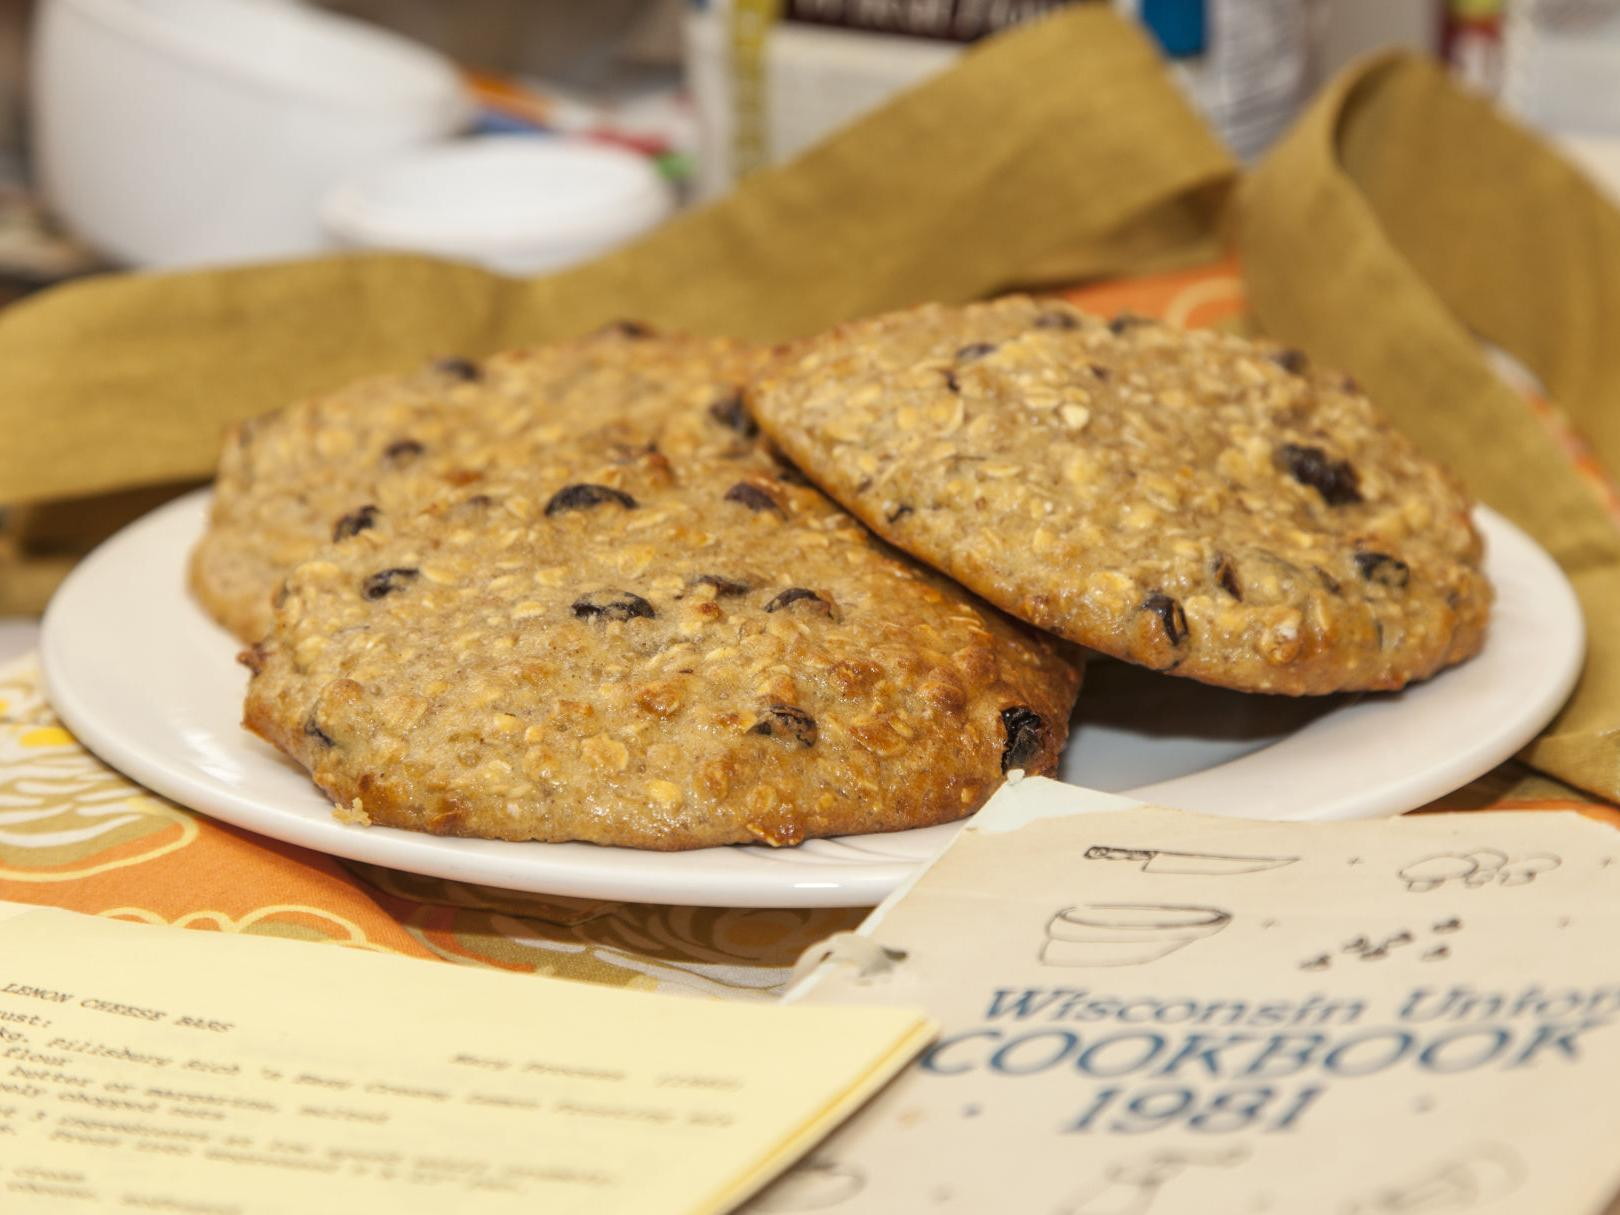 Ted Odell Dies Without Revealing His Legendary Guerrilla Cookie Recipe Local News Madison Com